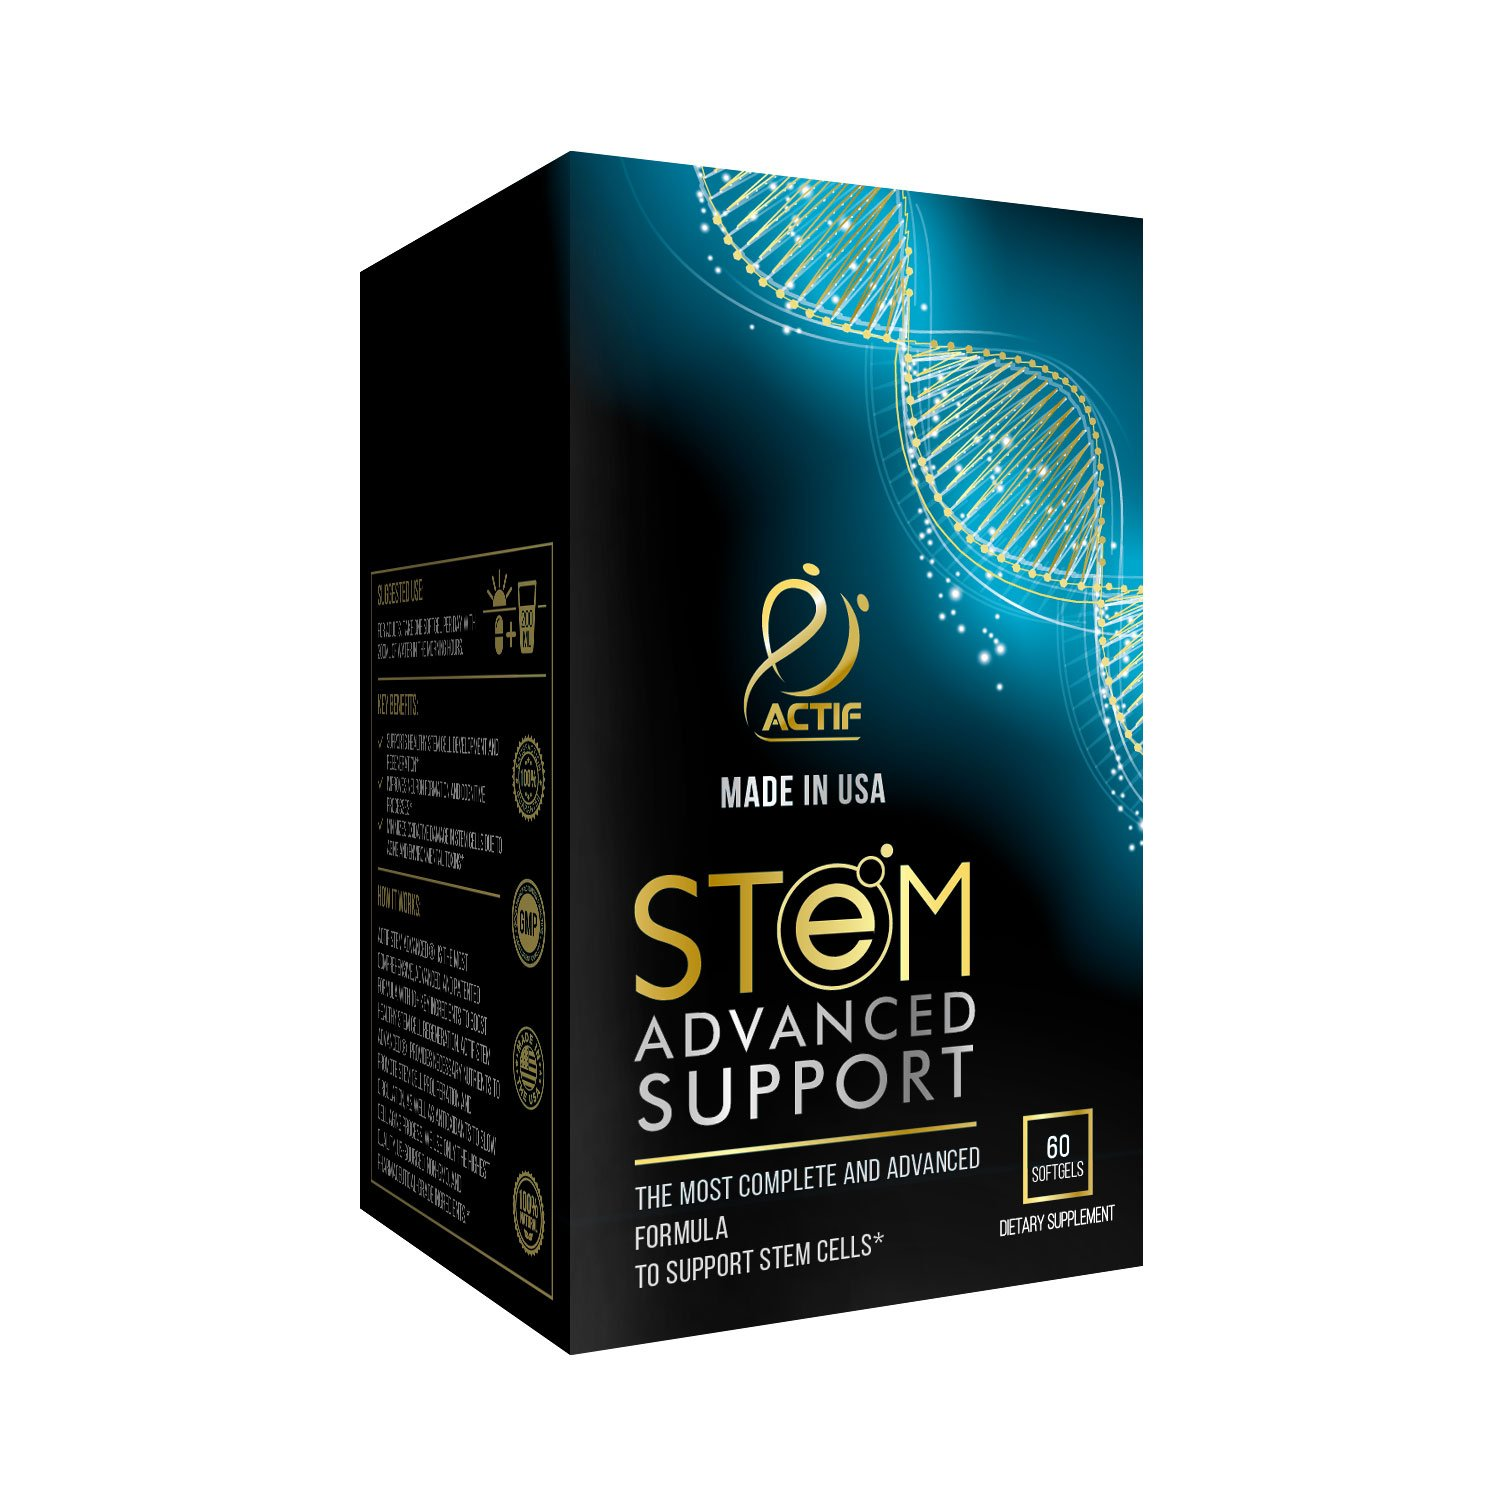 ACTIF STEM CELL SUPPORT - Maximum Strength with 10+ Stem Cell Factors, Non GMO